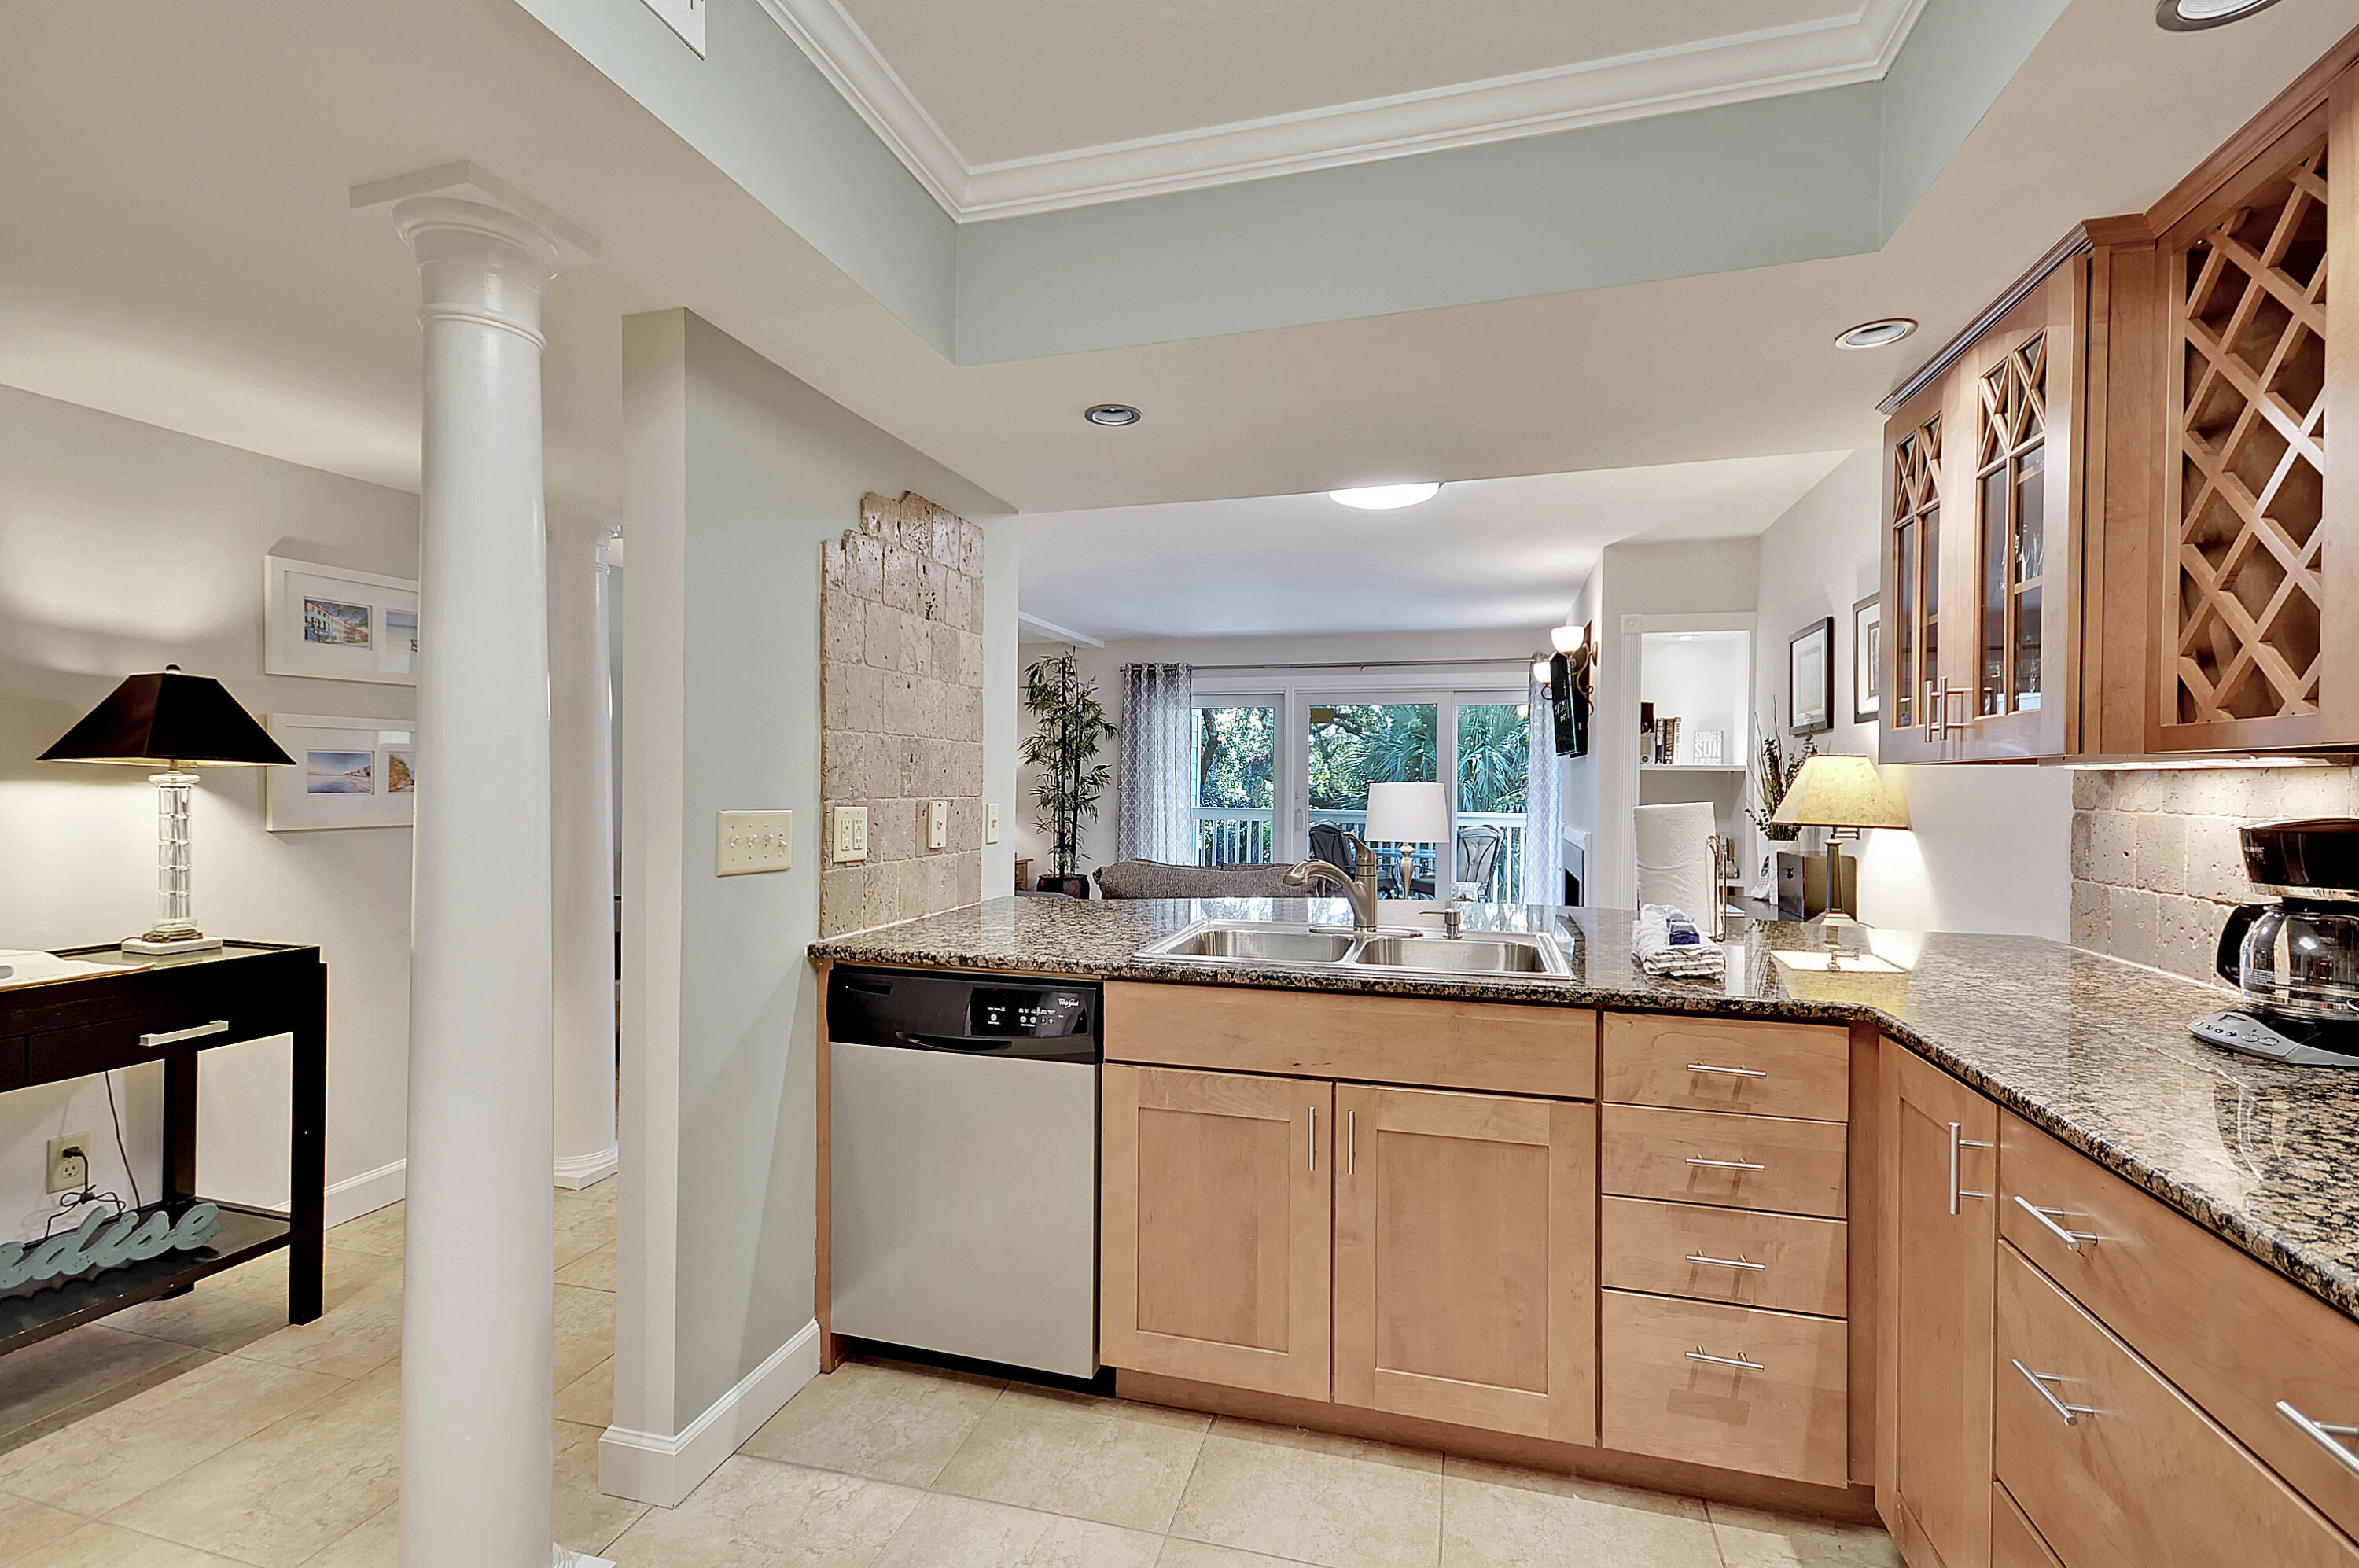 Wild Dunes Homes For Sale - 6 Seagrove, Isle of Palms, SC - 10